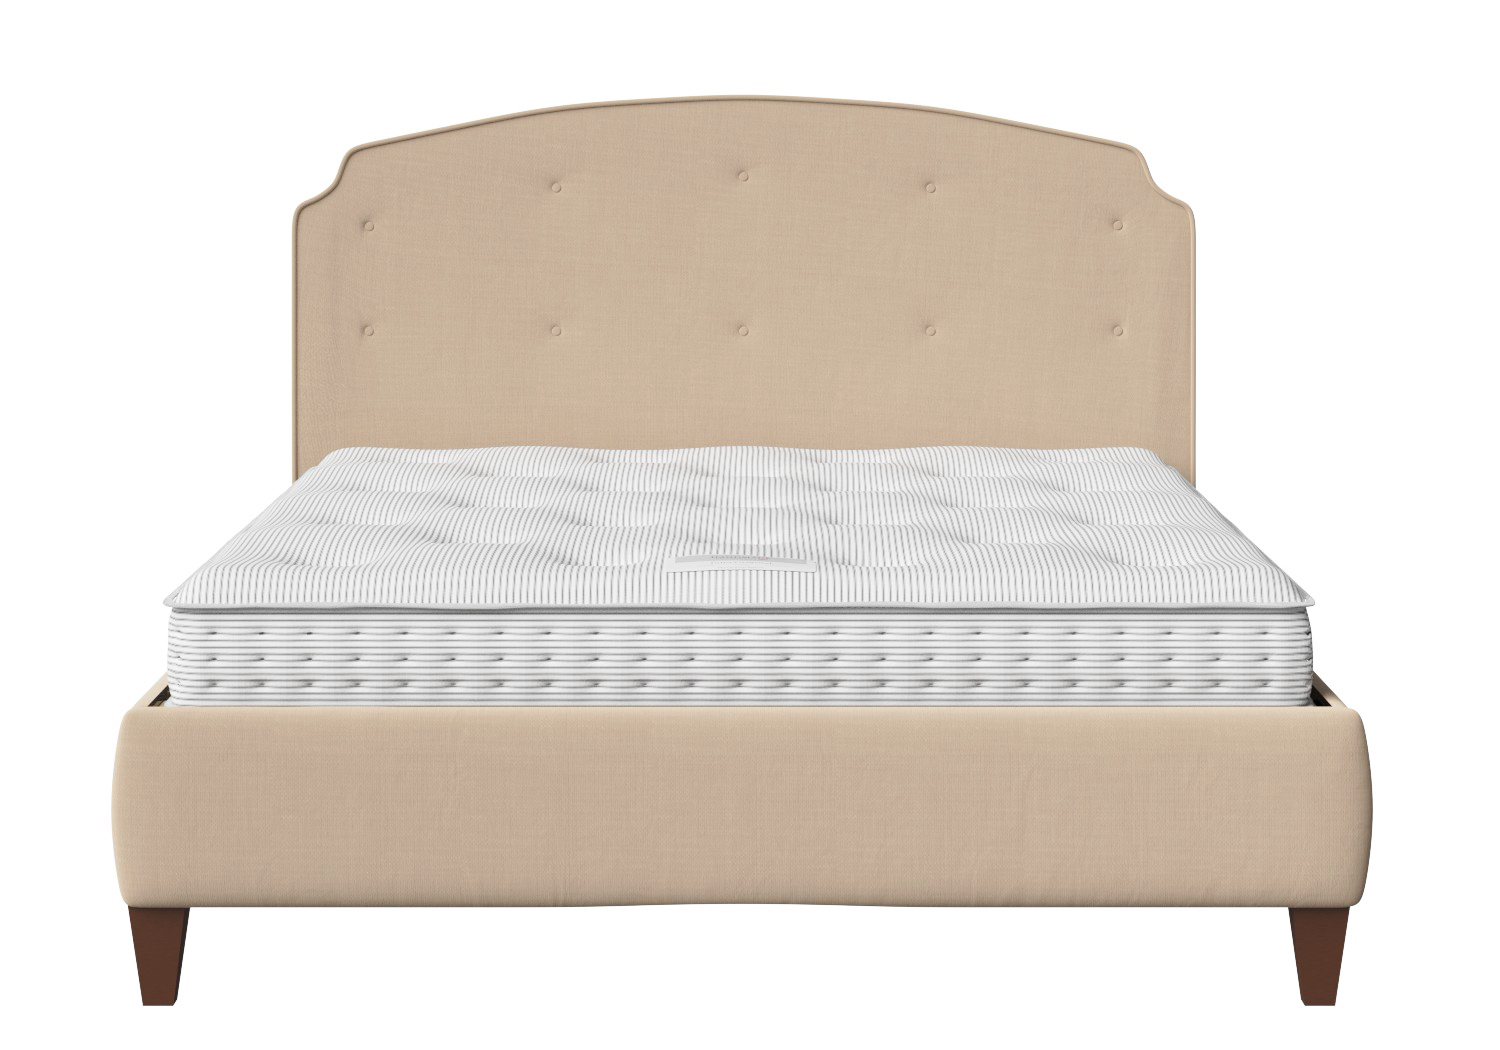 Lide square buttoned upholstered bed in natural fabric